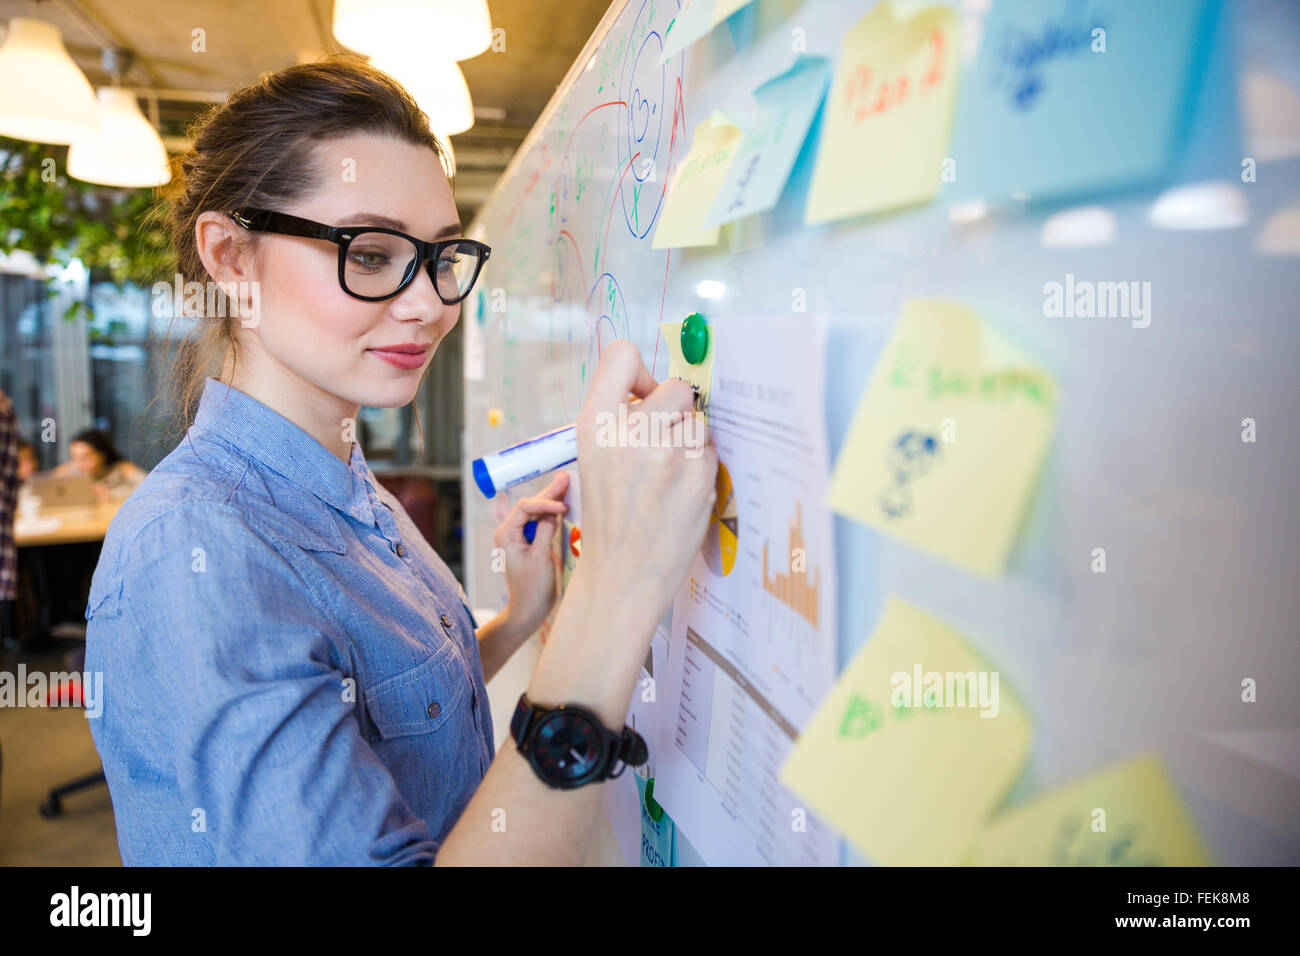 Young woman writing business plan on whiteboard in office - Stock Image